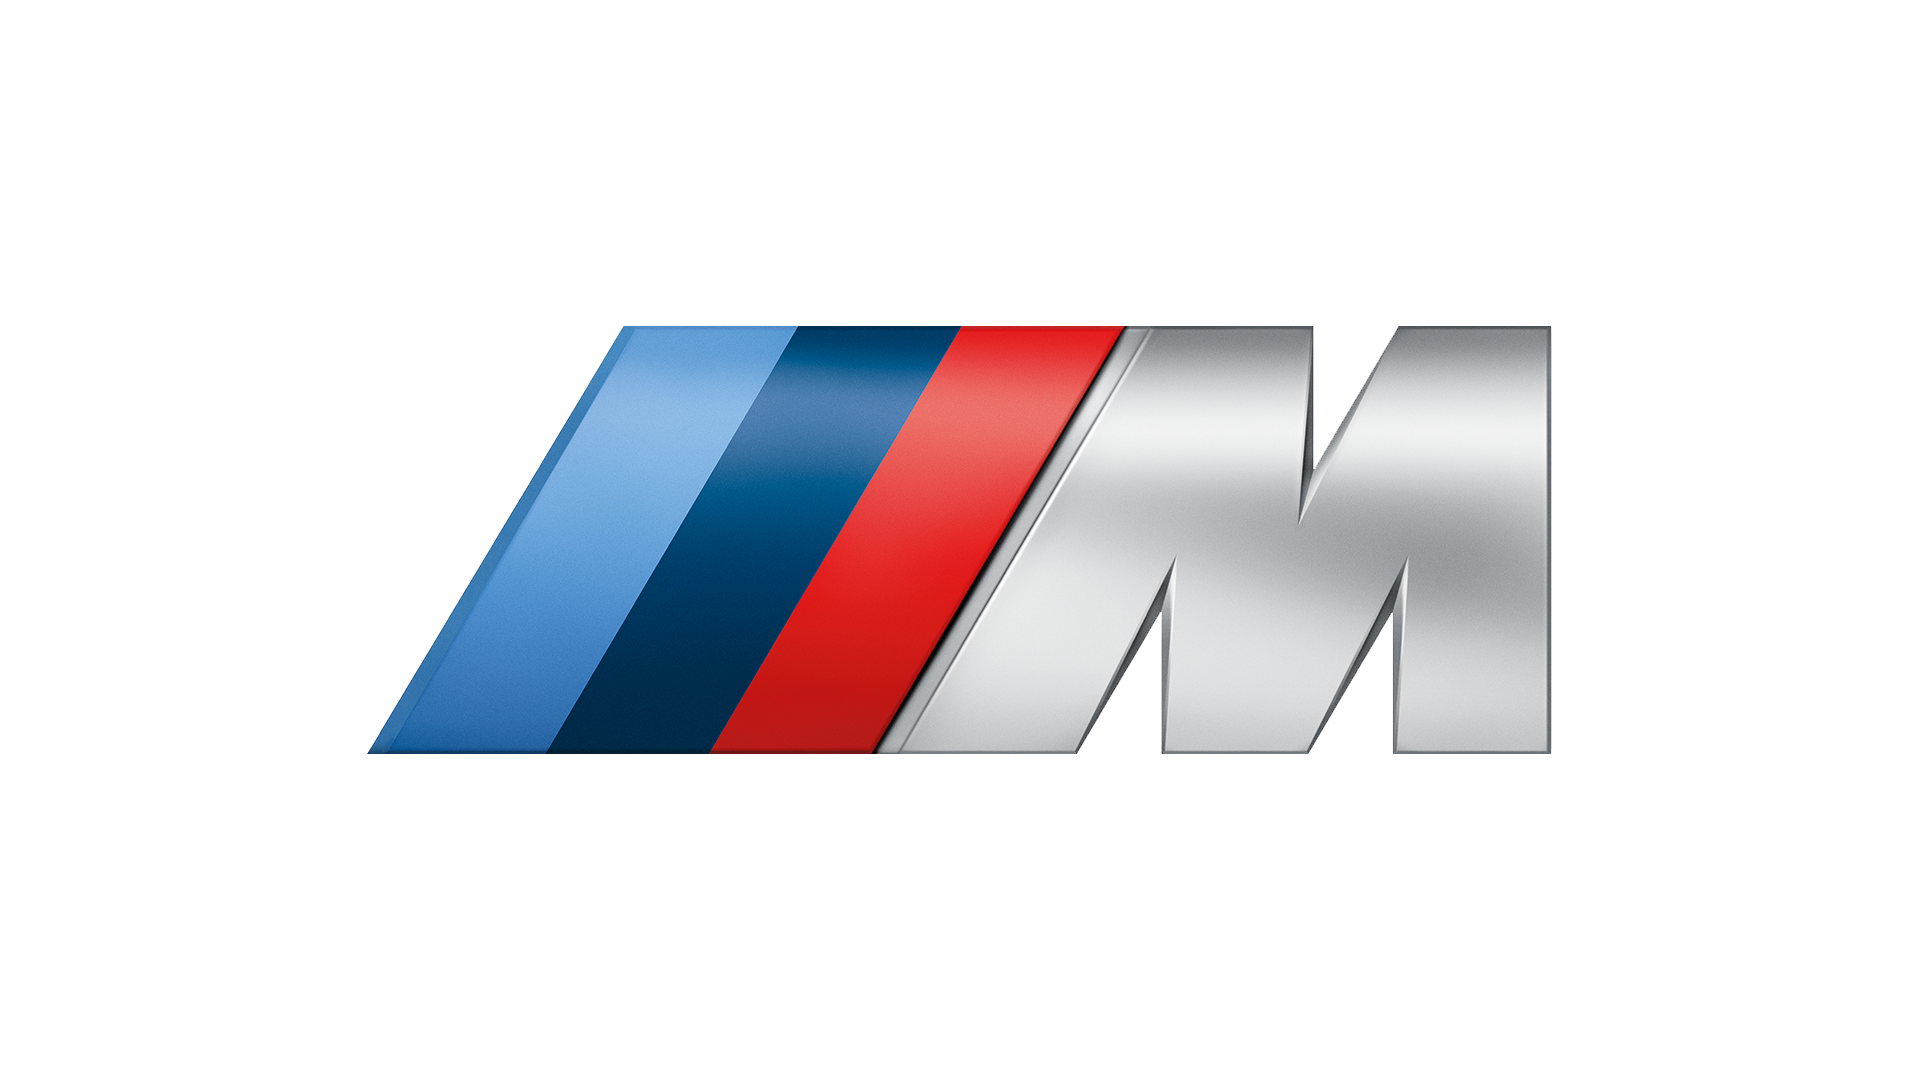 Bmw m logo png. Hd meaning information carlogos